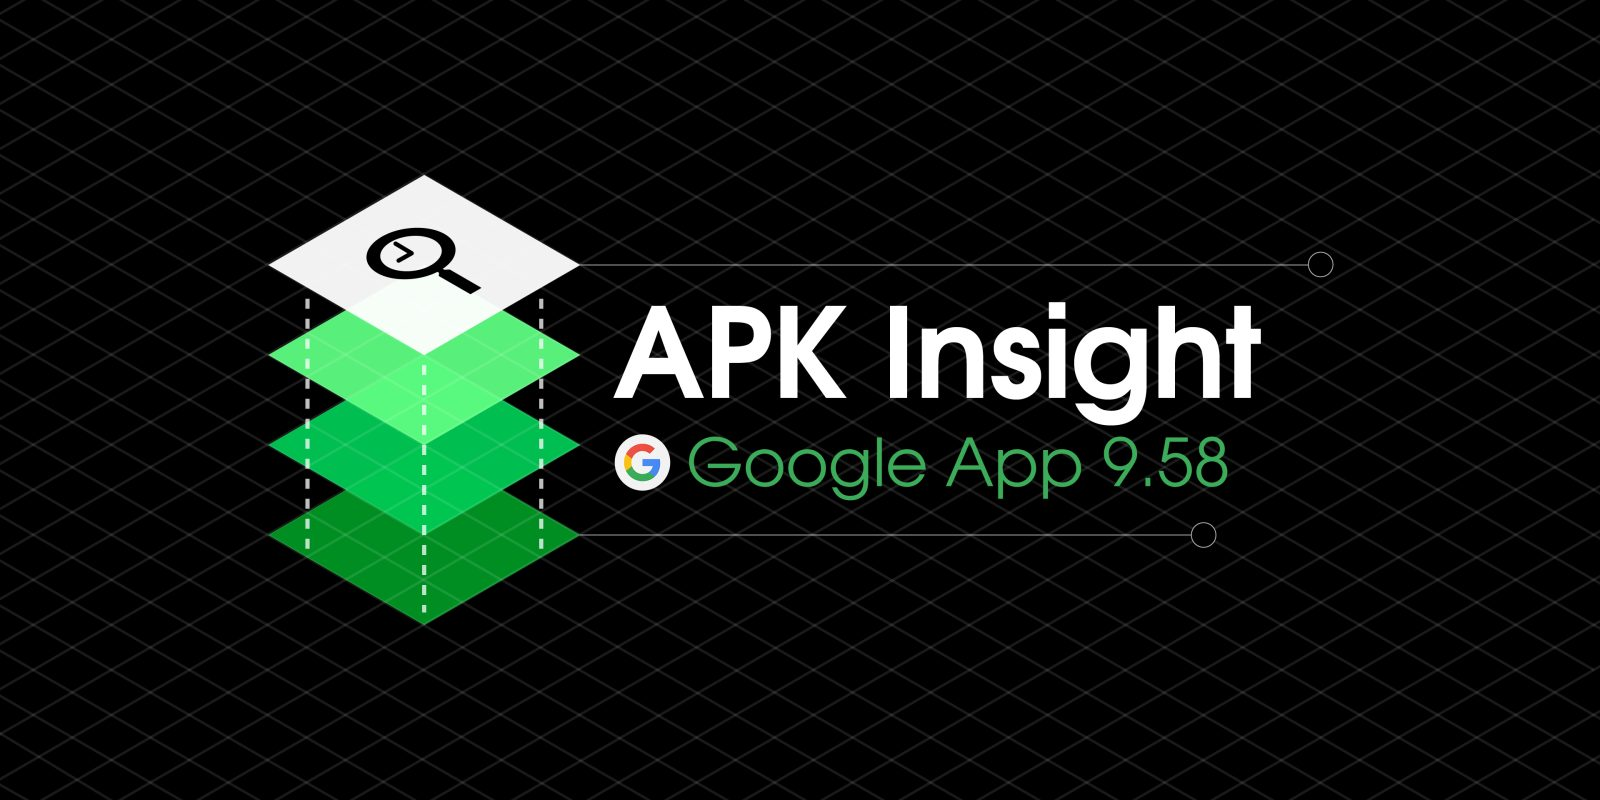 Google app 9 58 preps sleep timer, likely for Podcasts [APK Insight